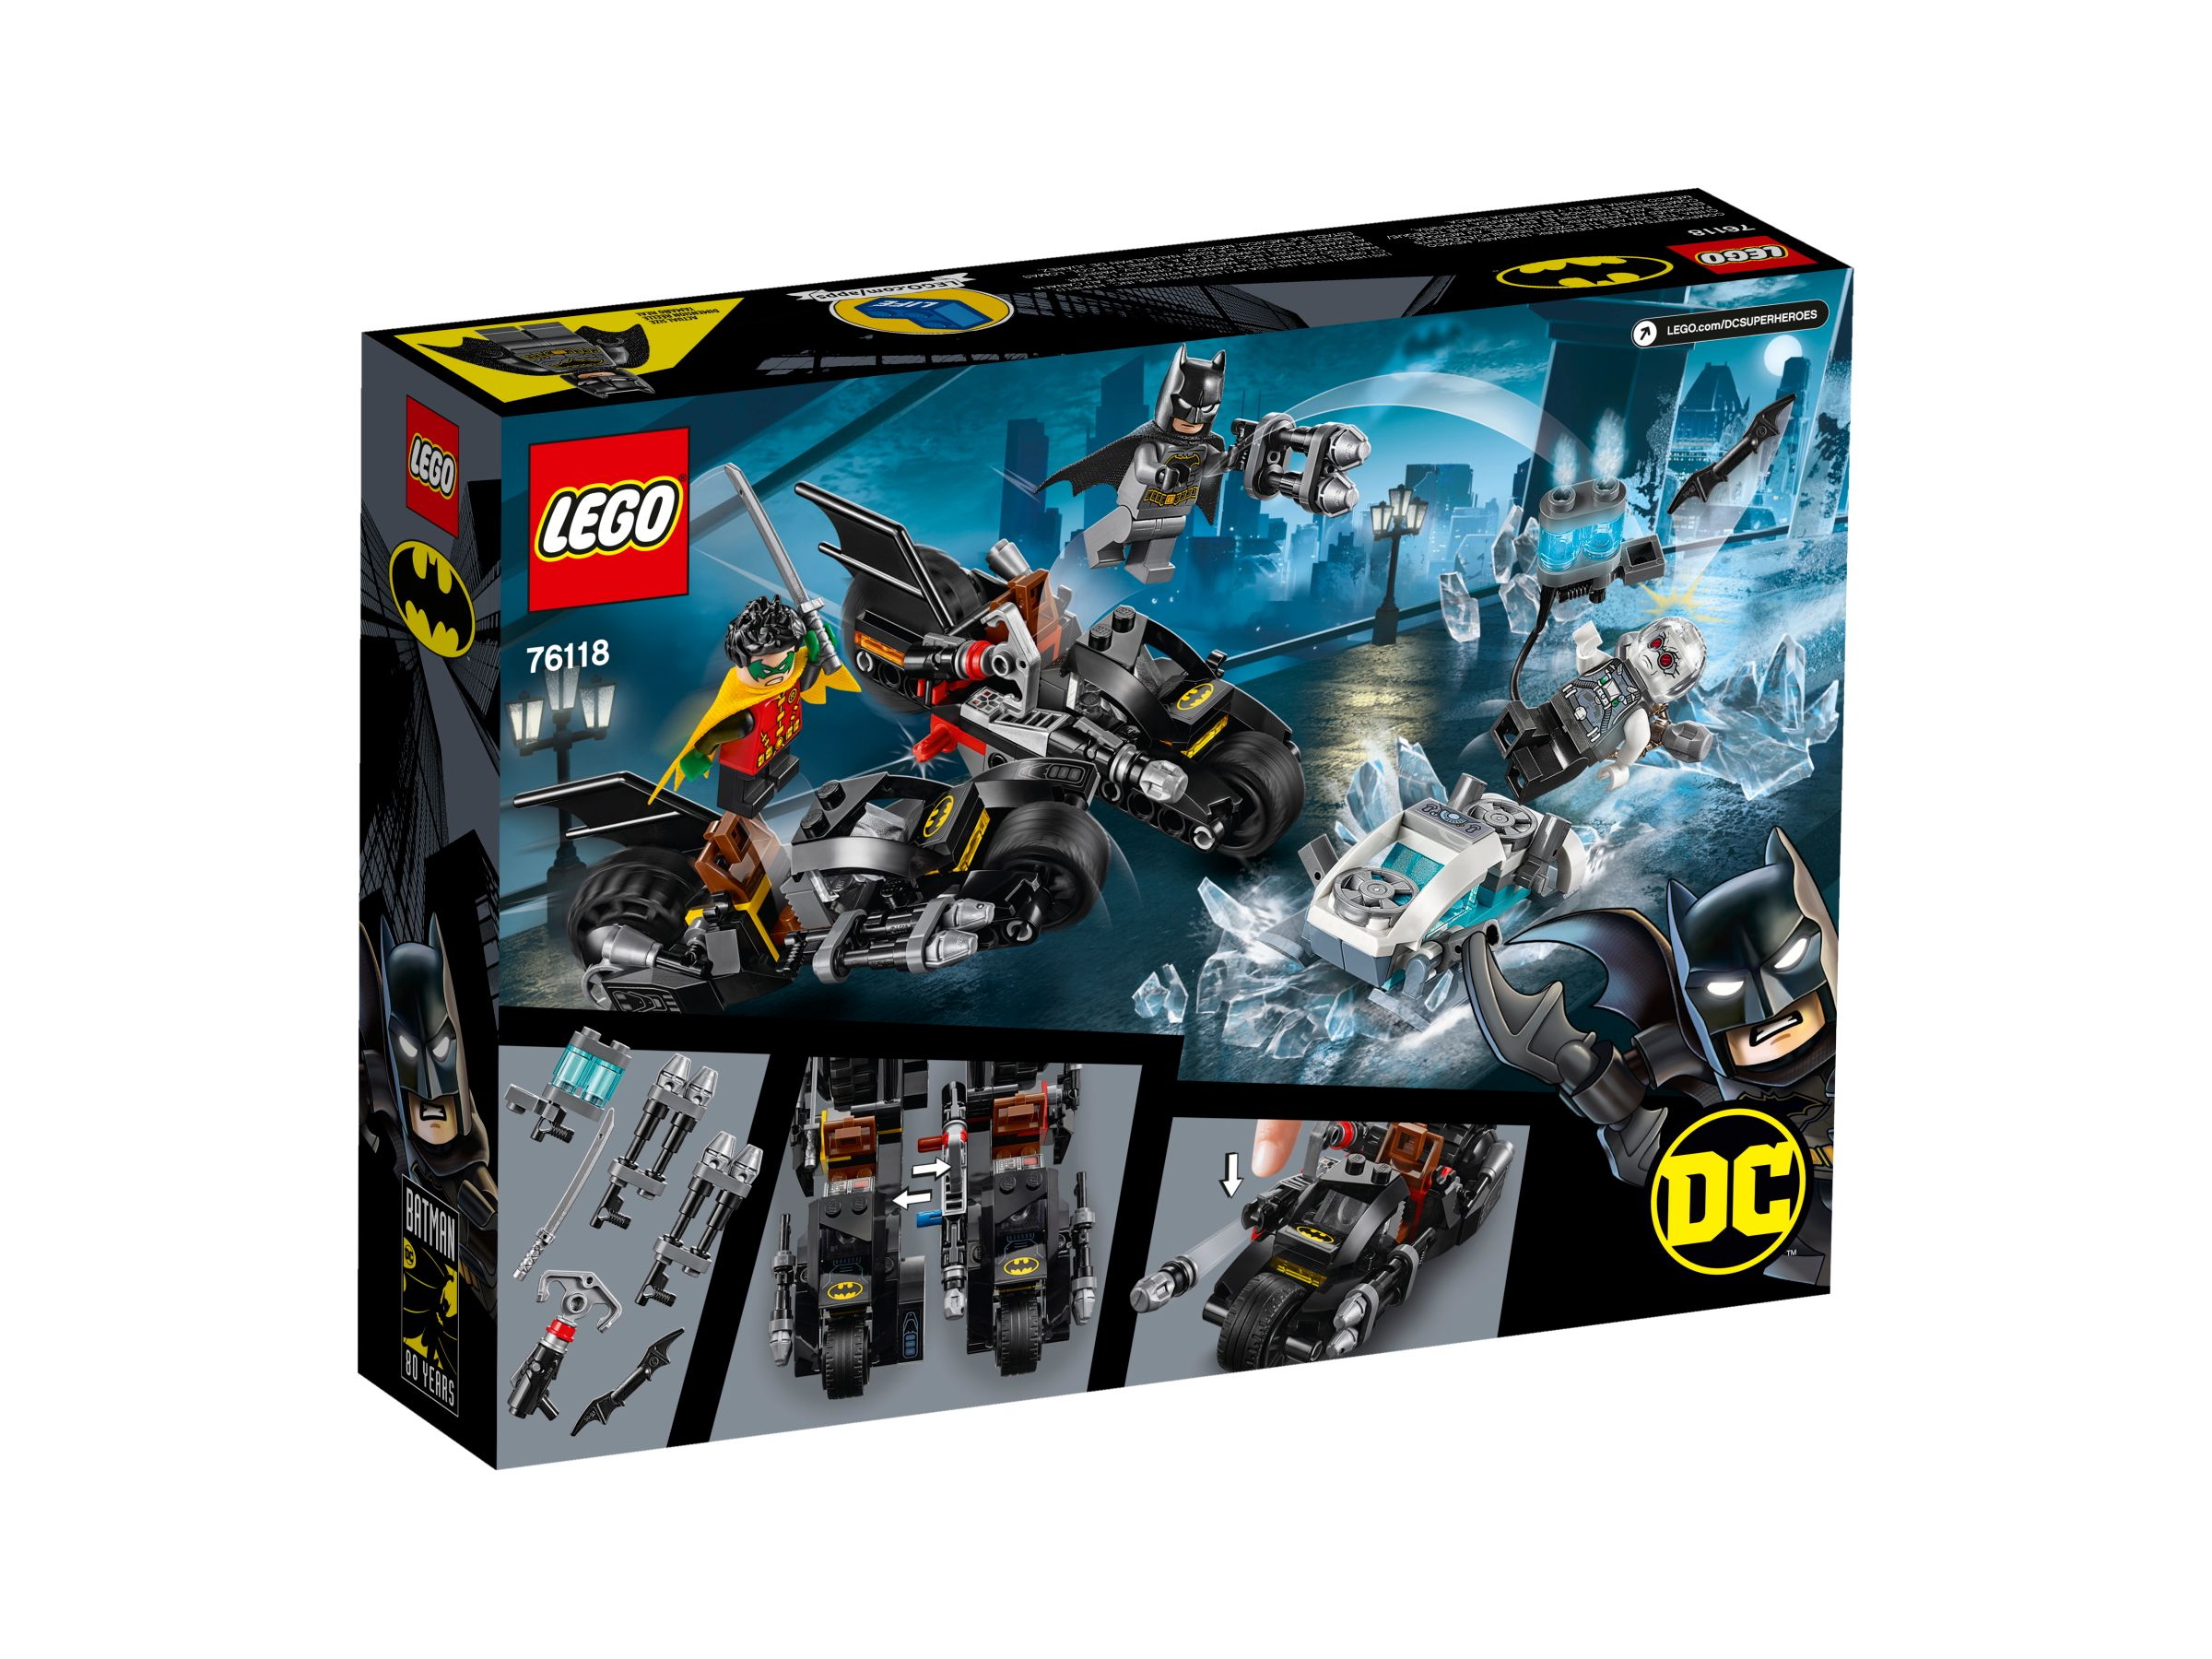 LEGO Super Heroes 76118 Batcycle-Duell mit Mr. Freeze™ LEGO_76118_alt4.jpg